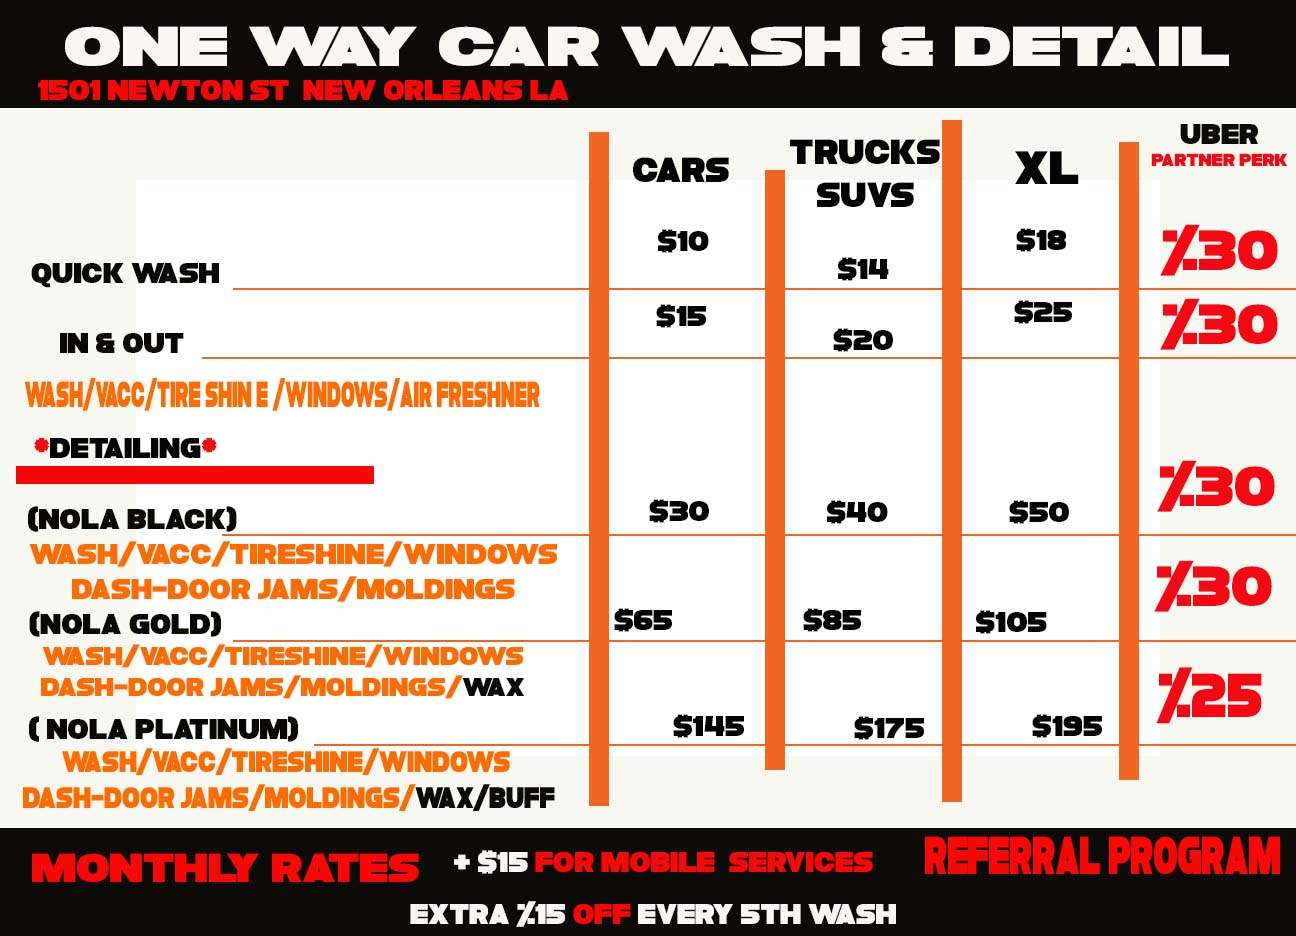 Car Wash Prices: One Way Car Wash & Detail Co